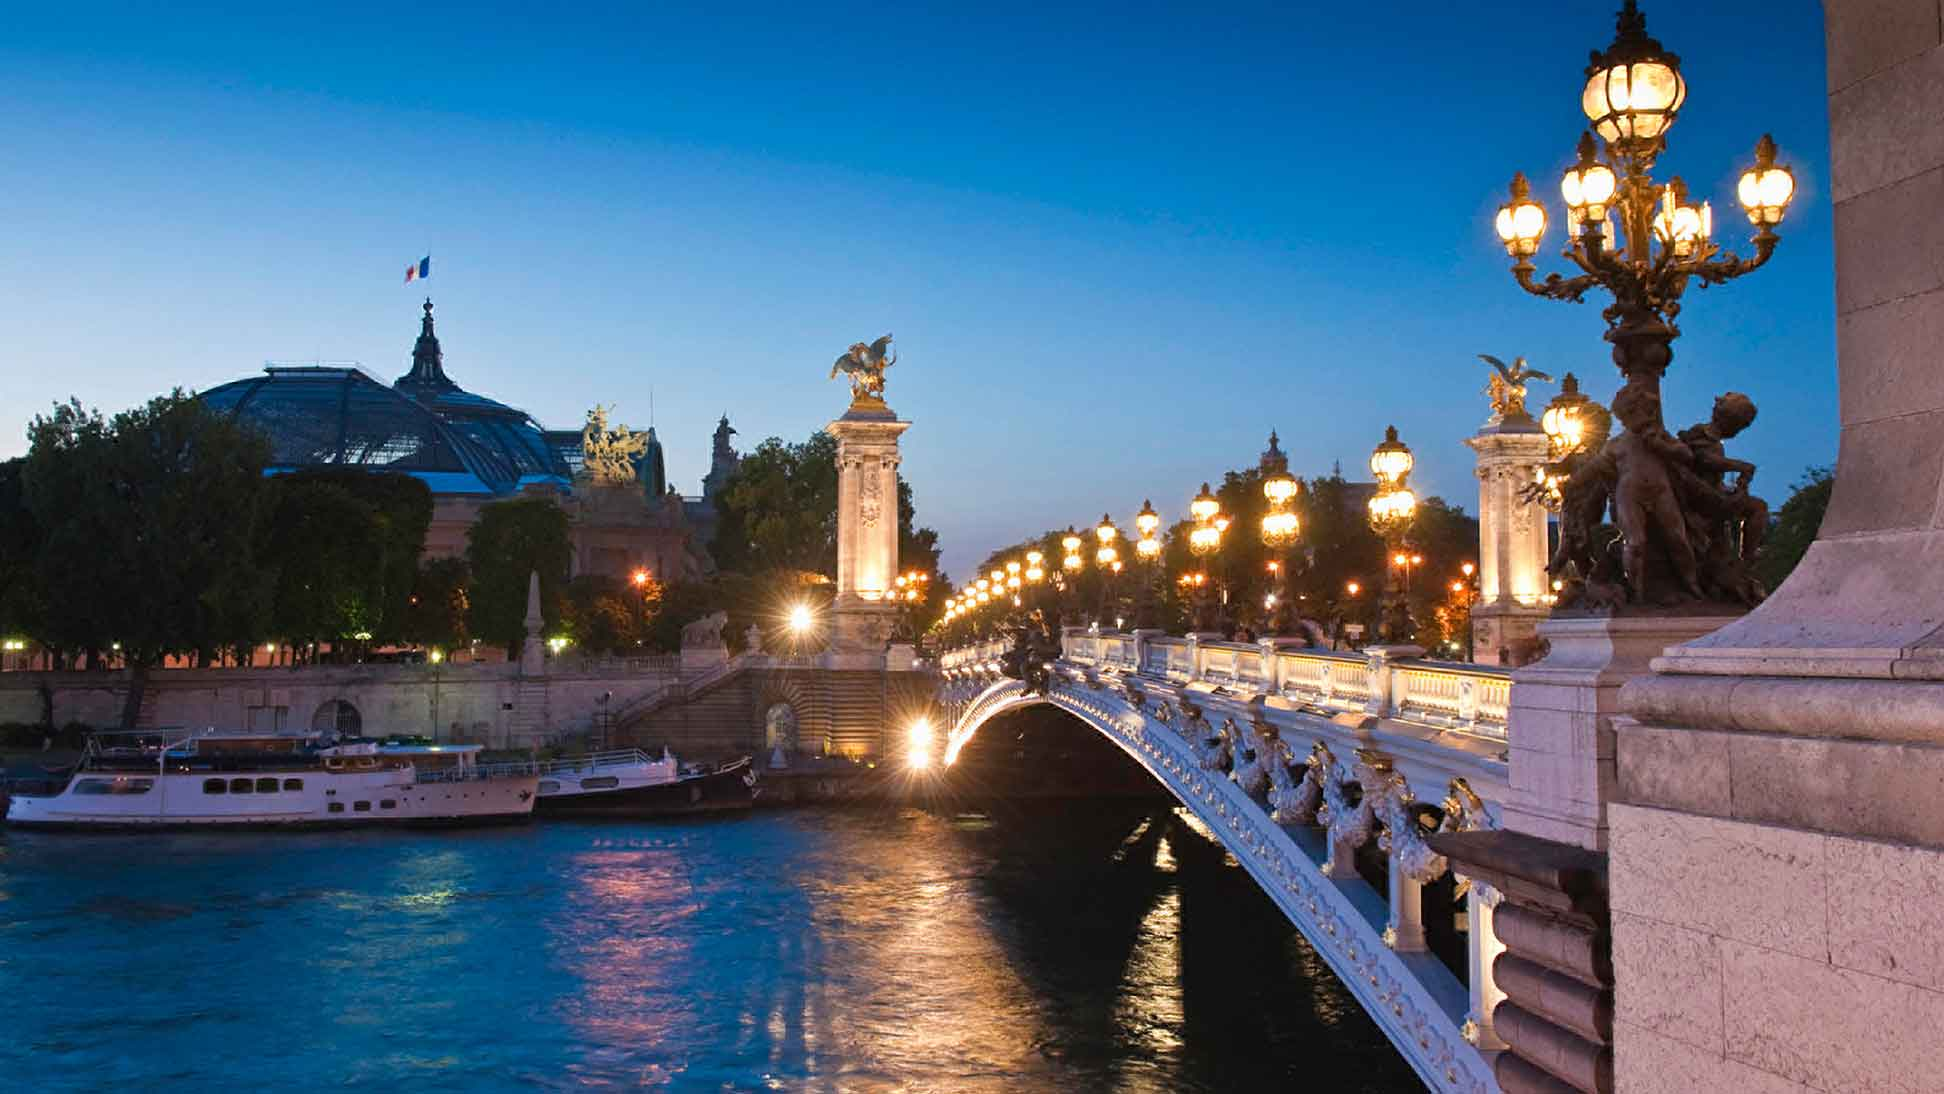 Bridge over the River Seine in Paris, France